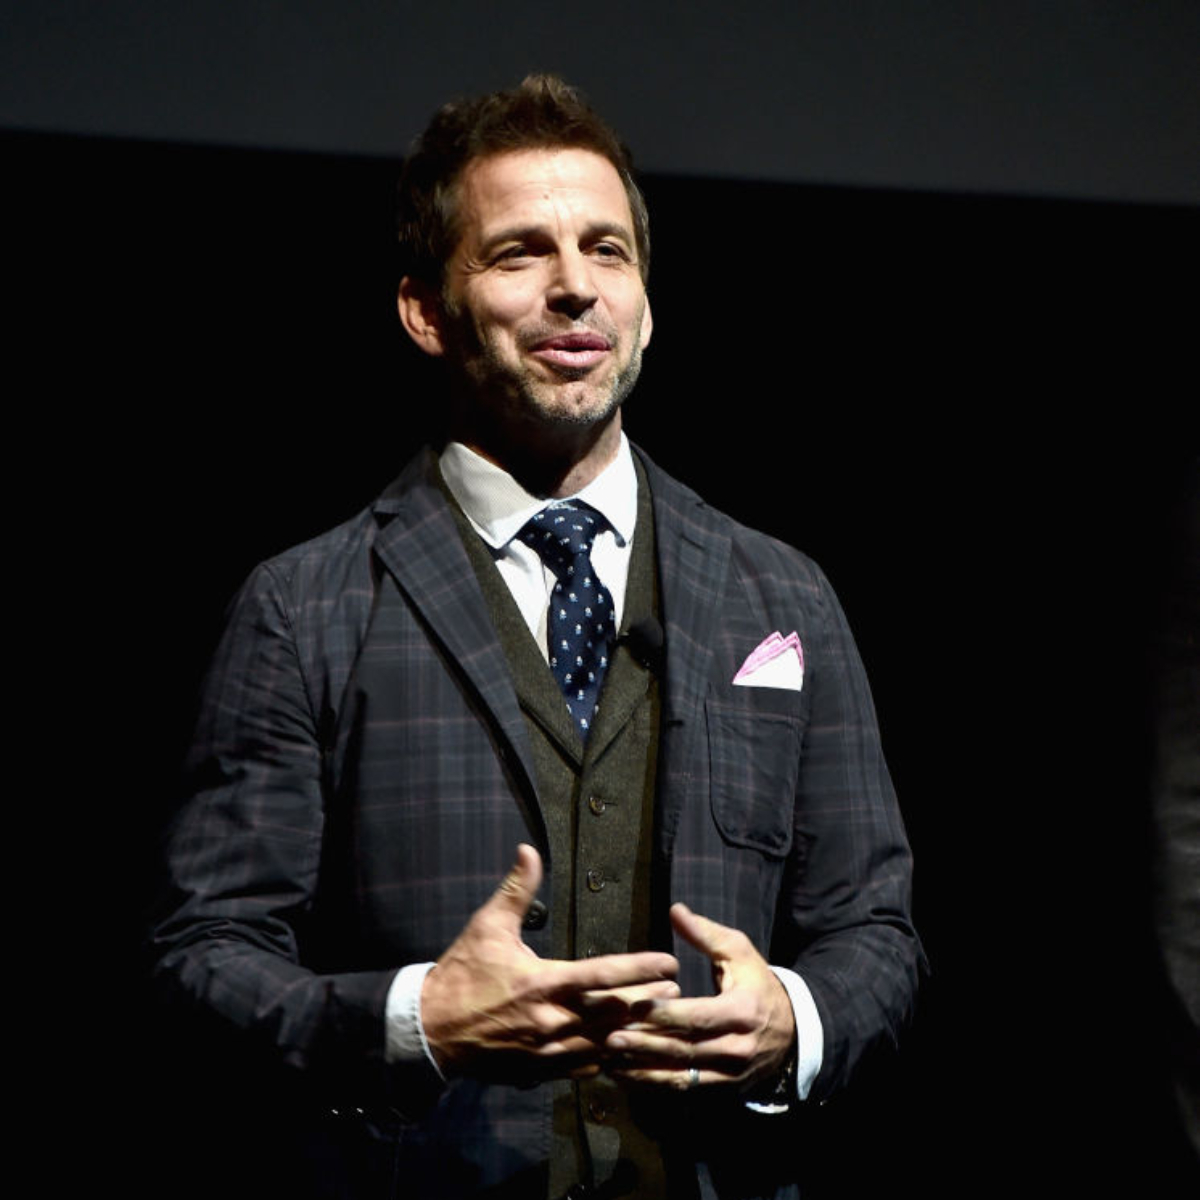 Justice League Snyder Cut: Zack Snyder shares a new photo featuring Wonder Woman and Aquaman; Check it out